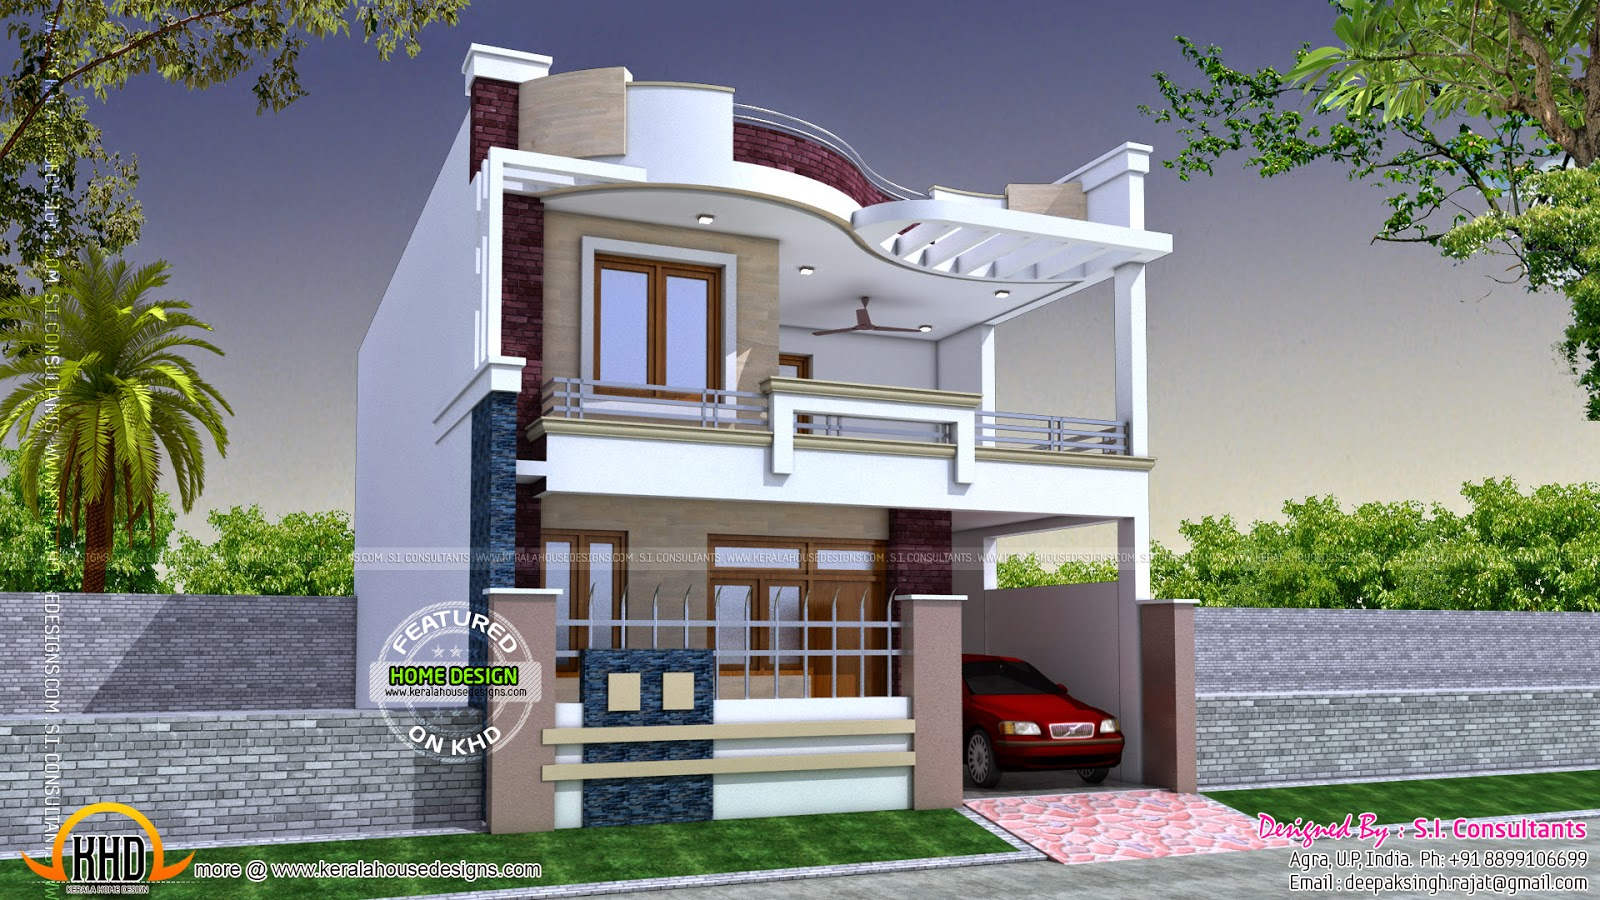 Modern indian home design kerala home design and floor plans for Home plans with photos